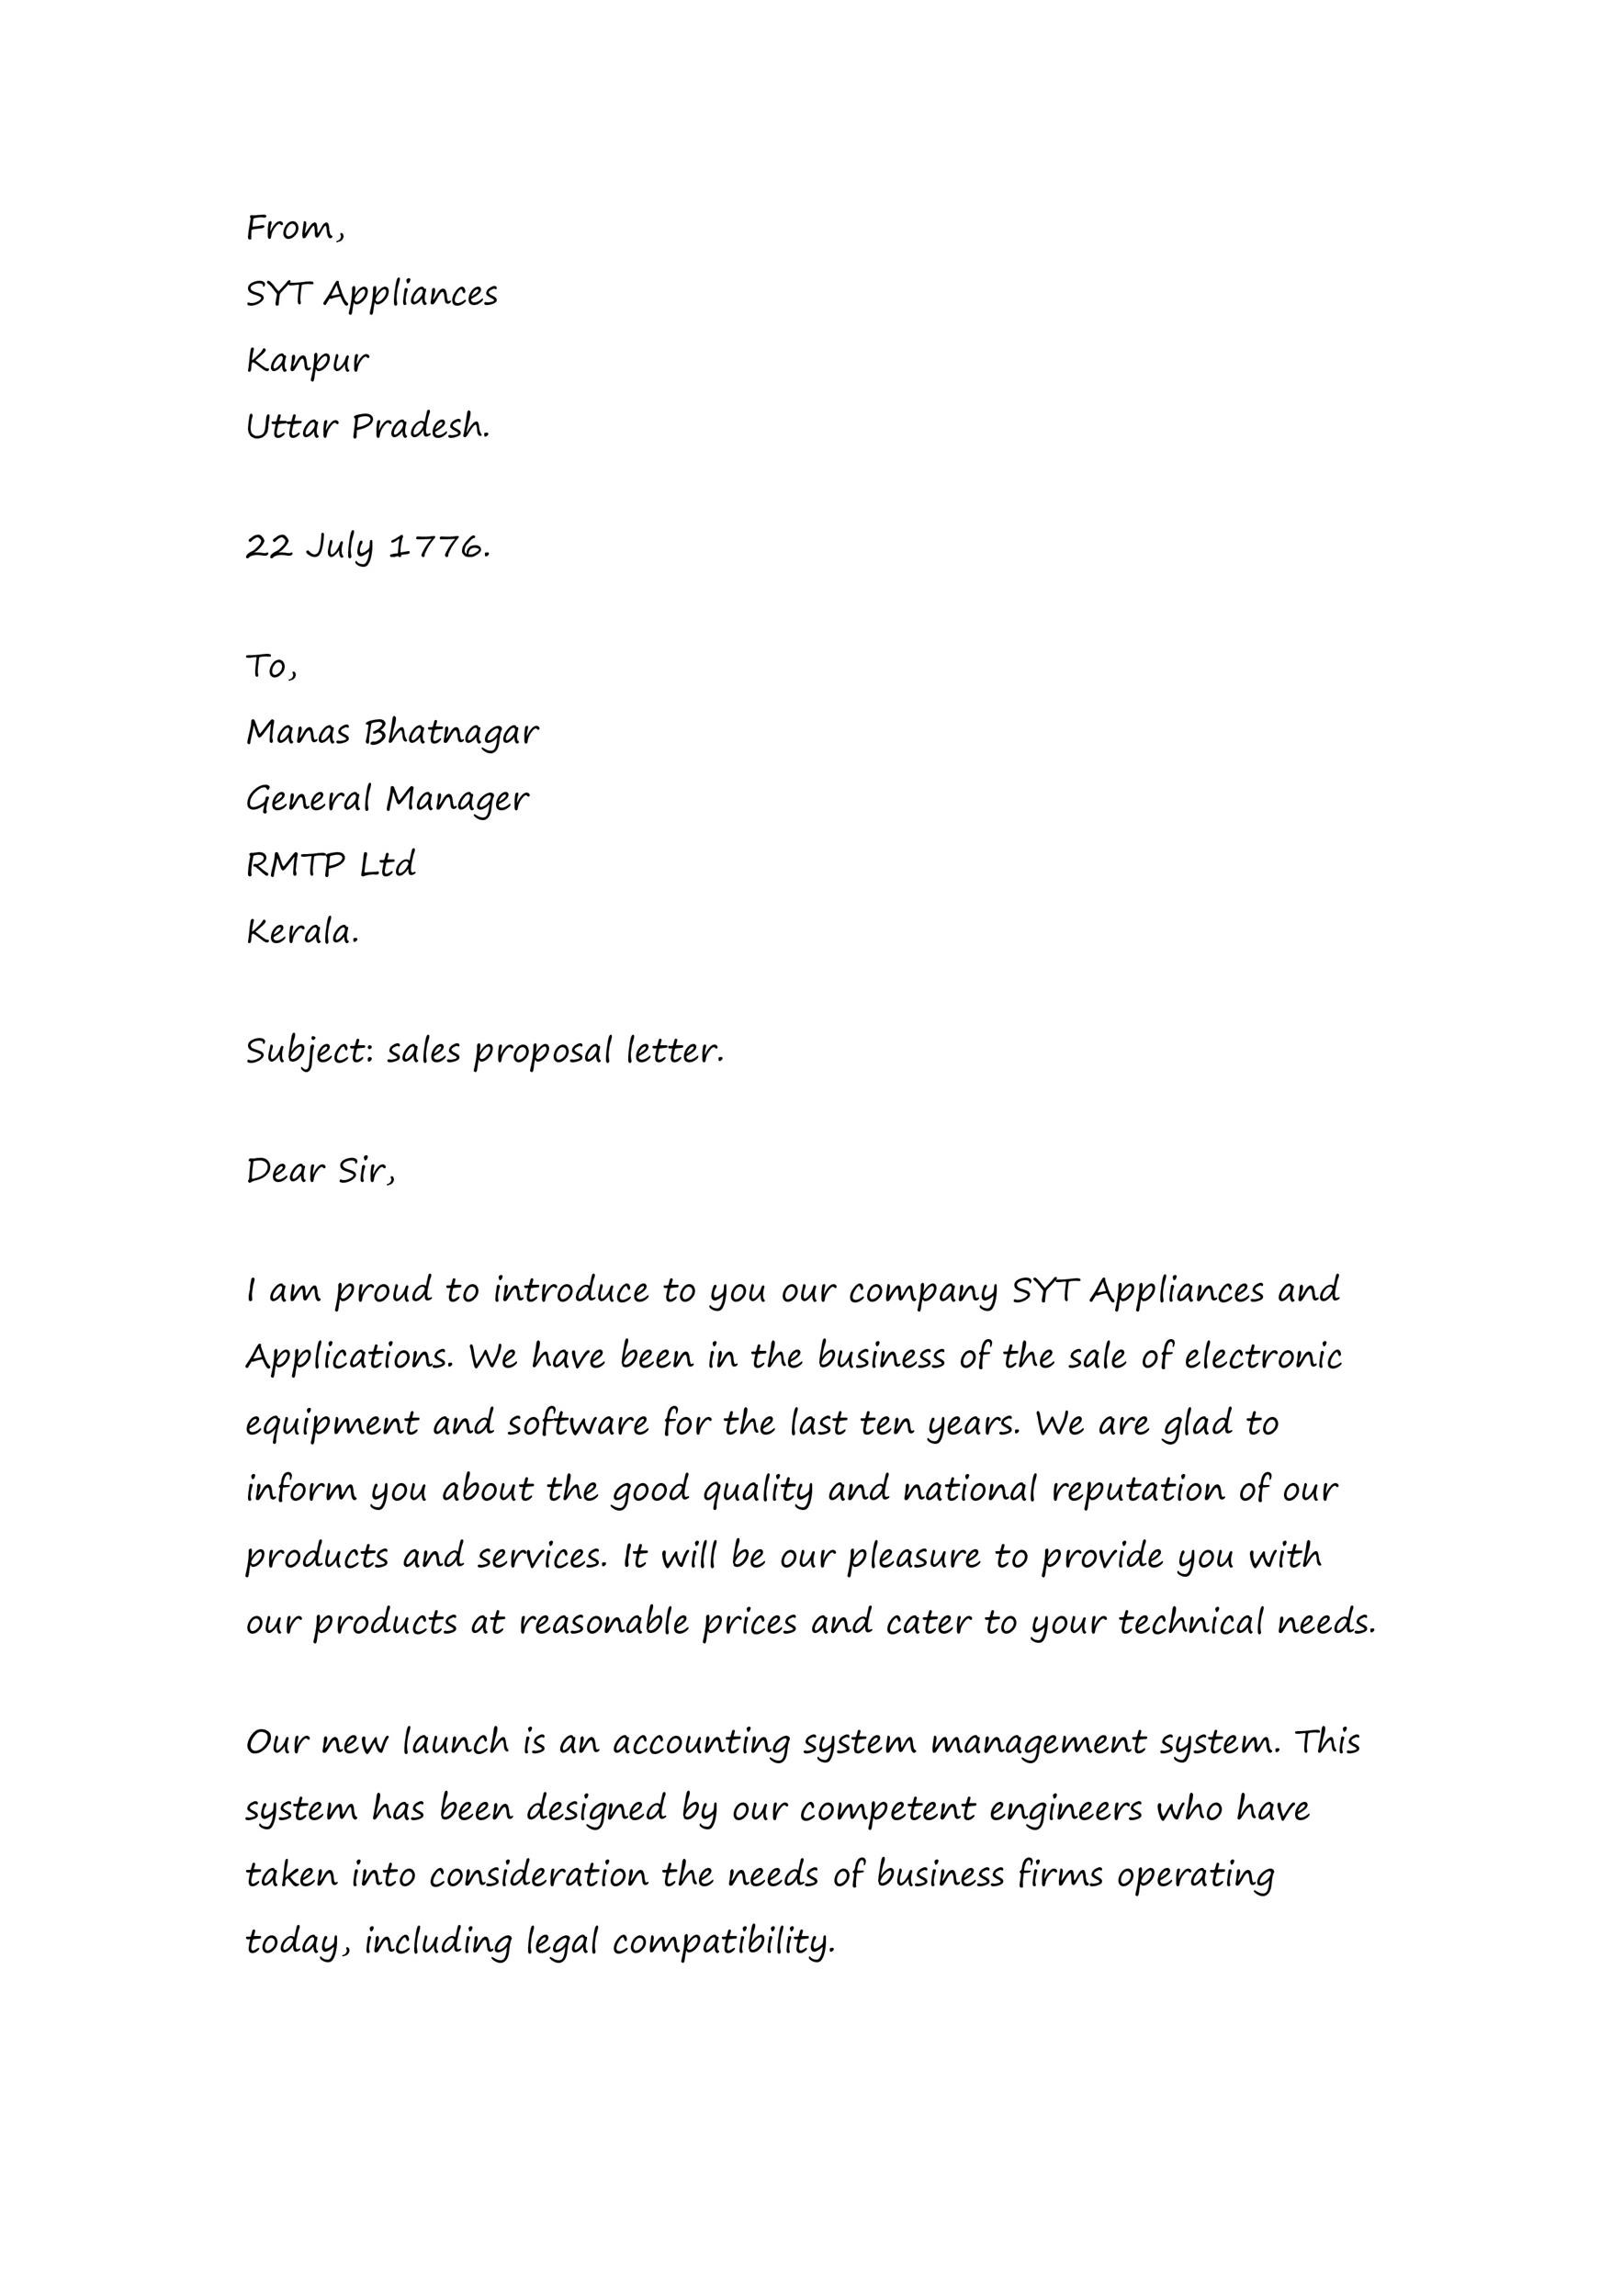 50 Effective Sales Letter Templates (w/ Examples) ᐅ Template Lab